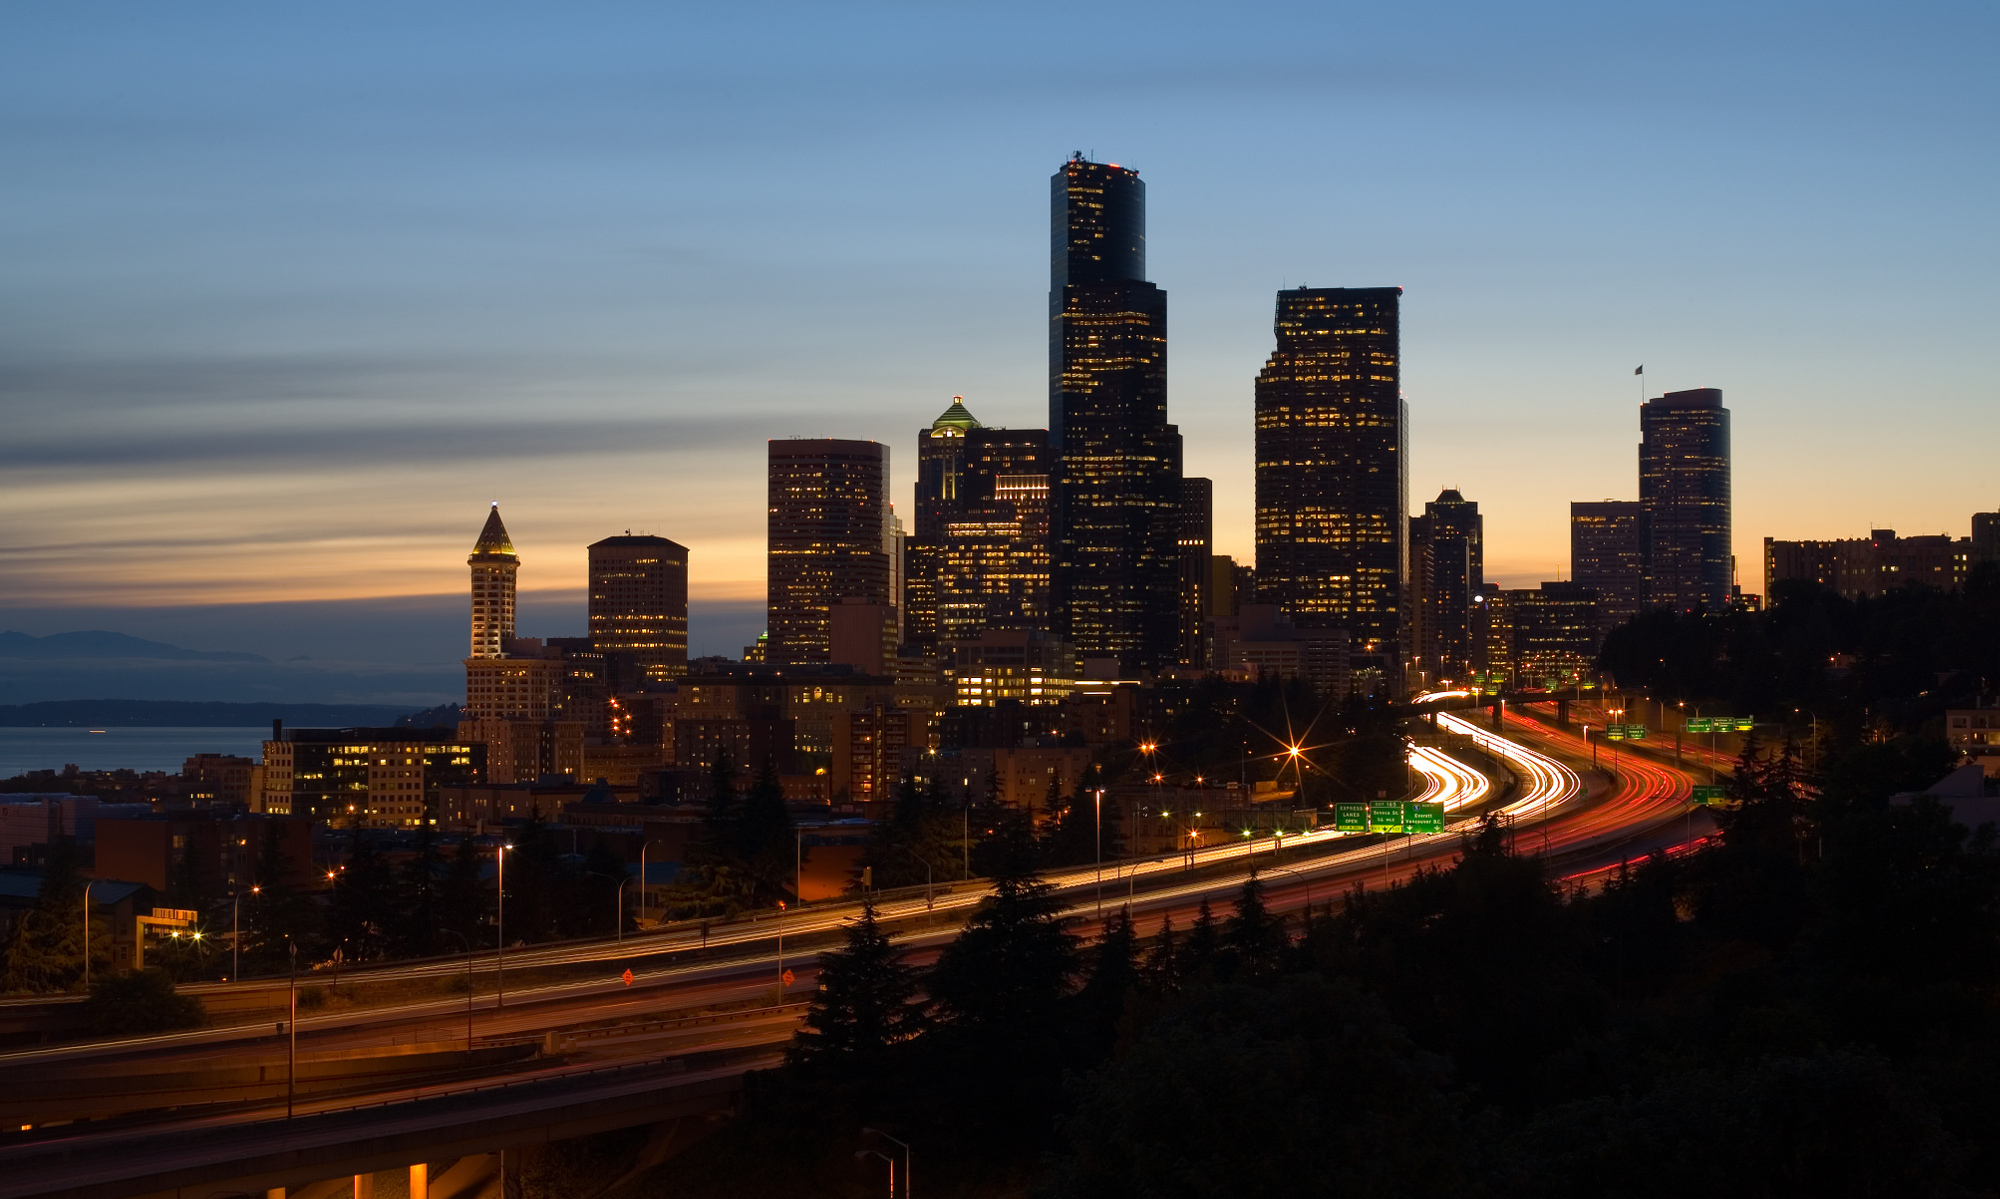 Cascadia Magazine | Exploring ideas and culture in the Pacific Northwest